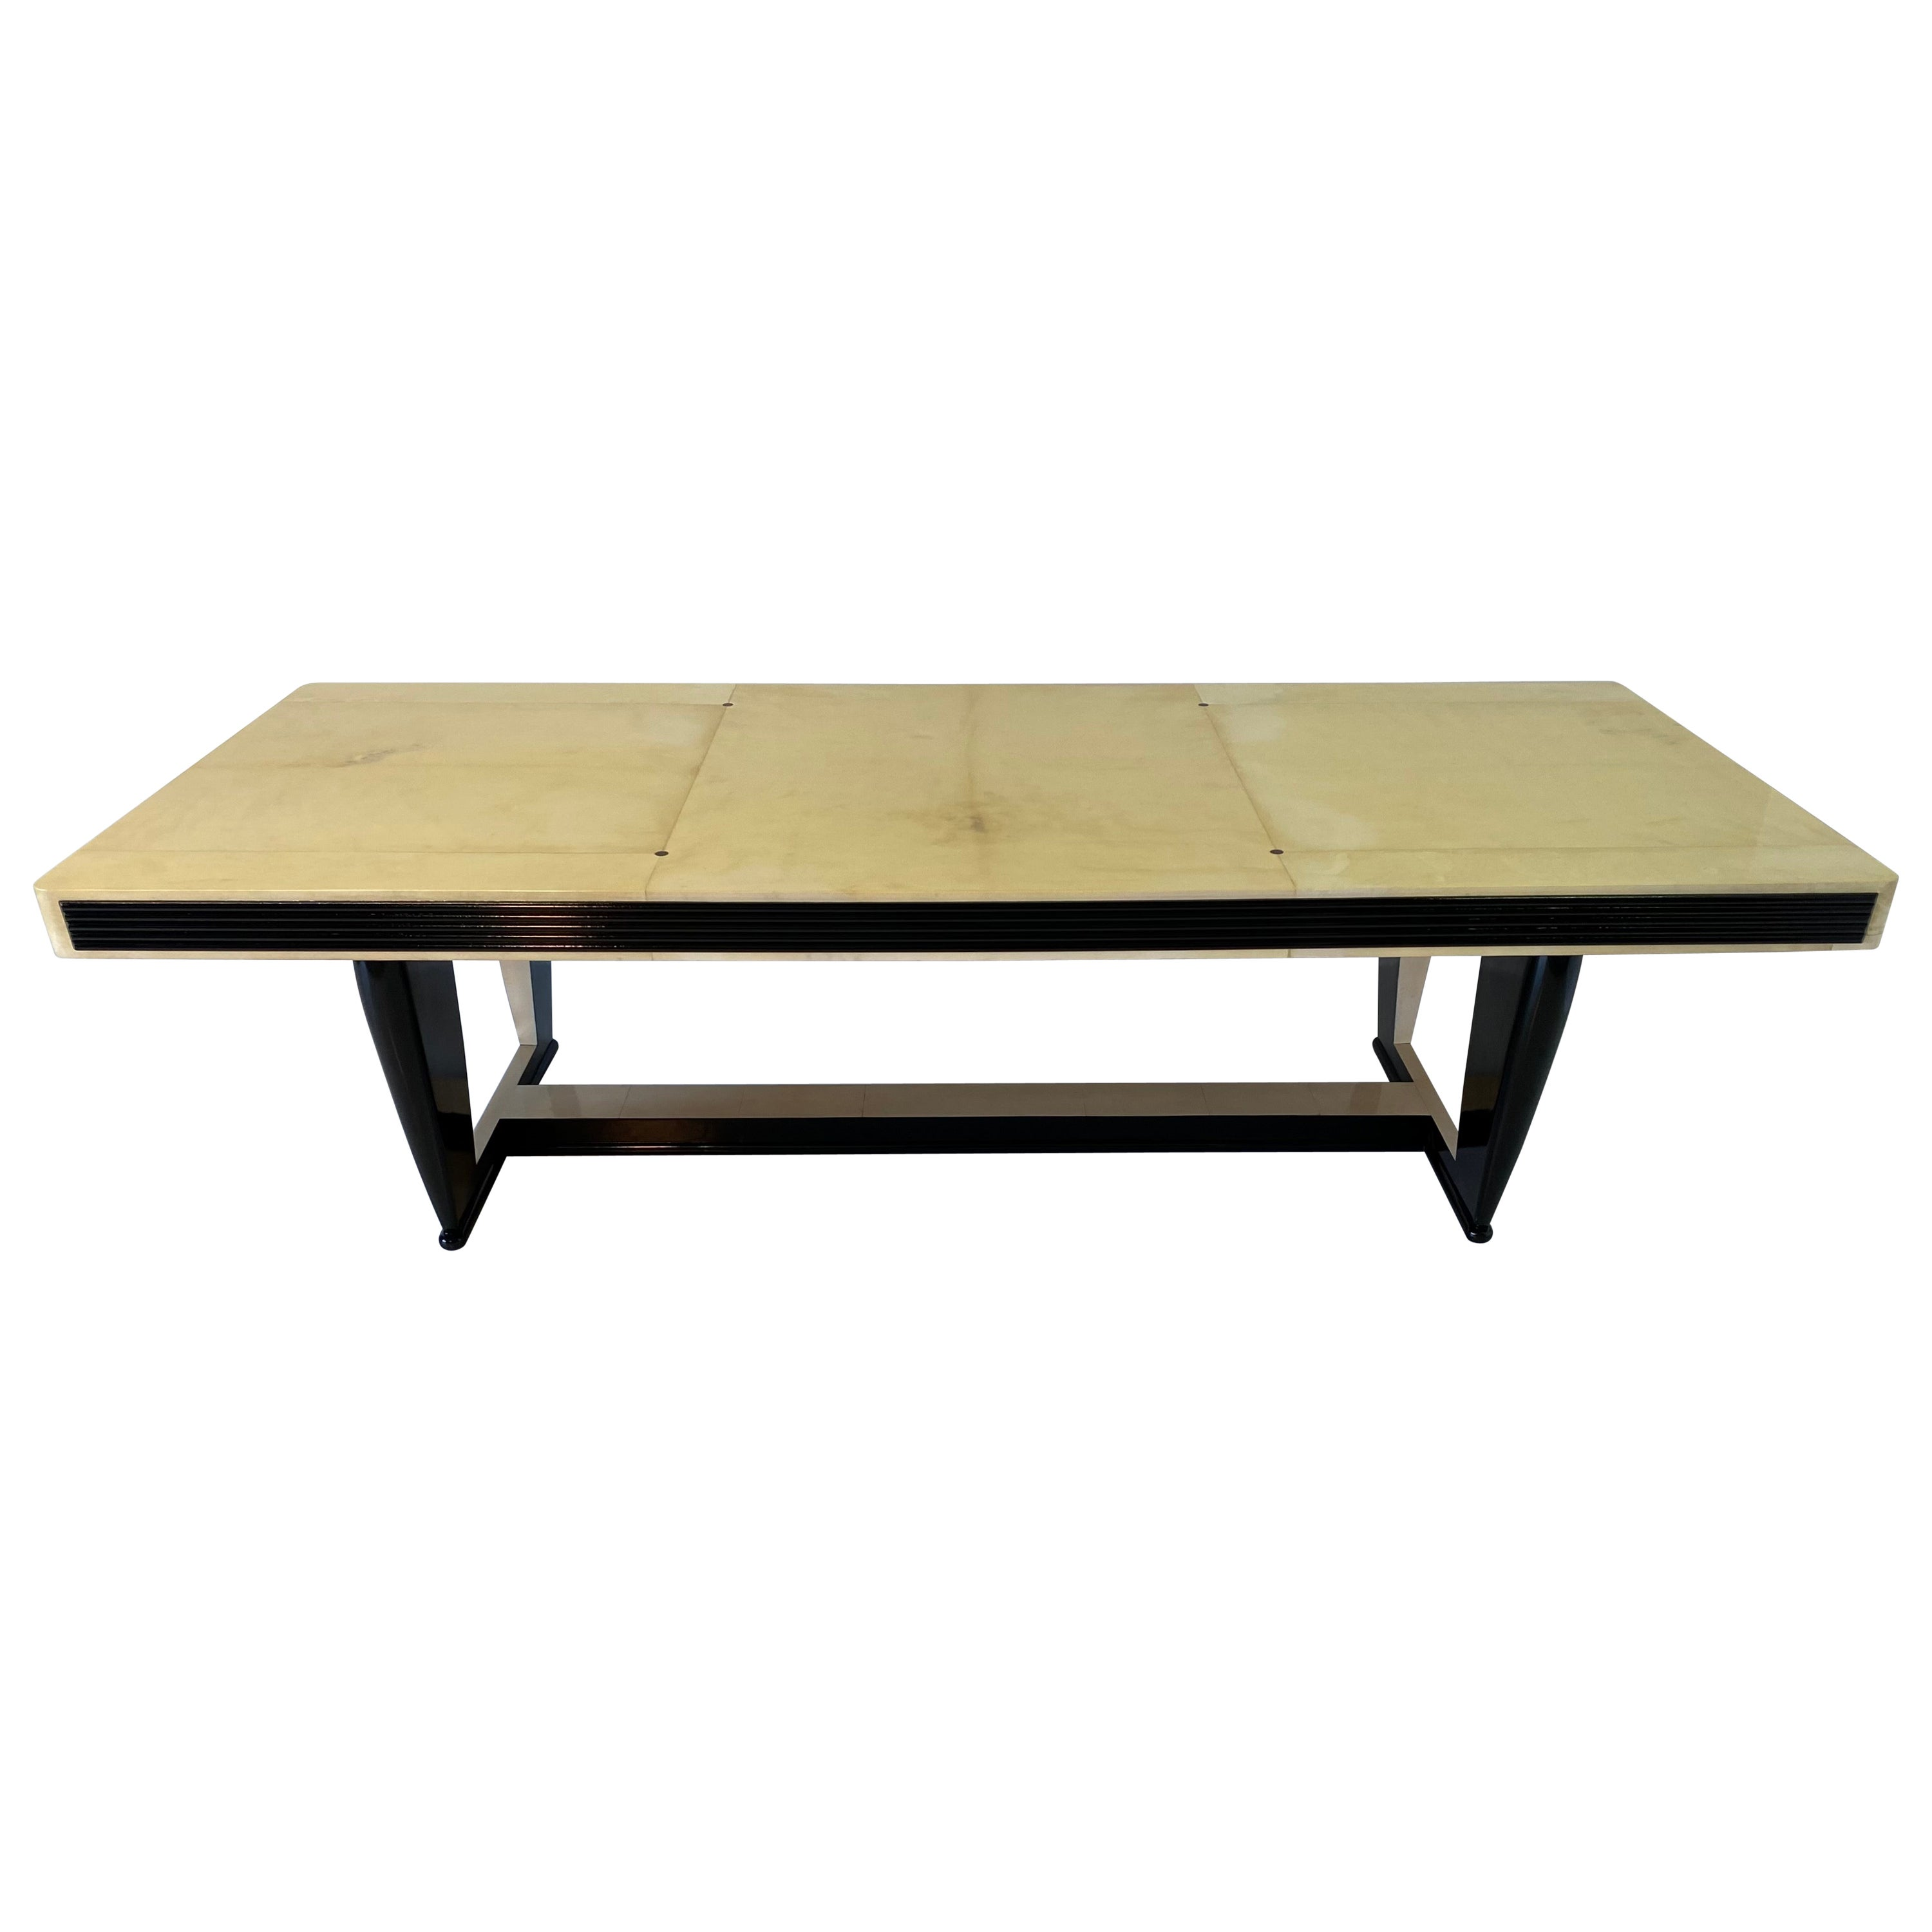 Exclusive Italian Art Deco Parchment Dining Table, 1940s